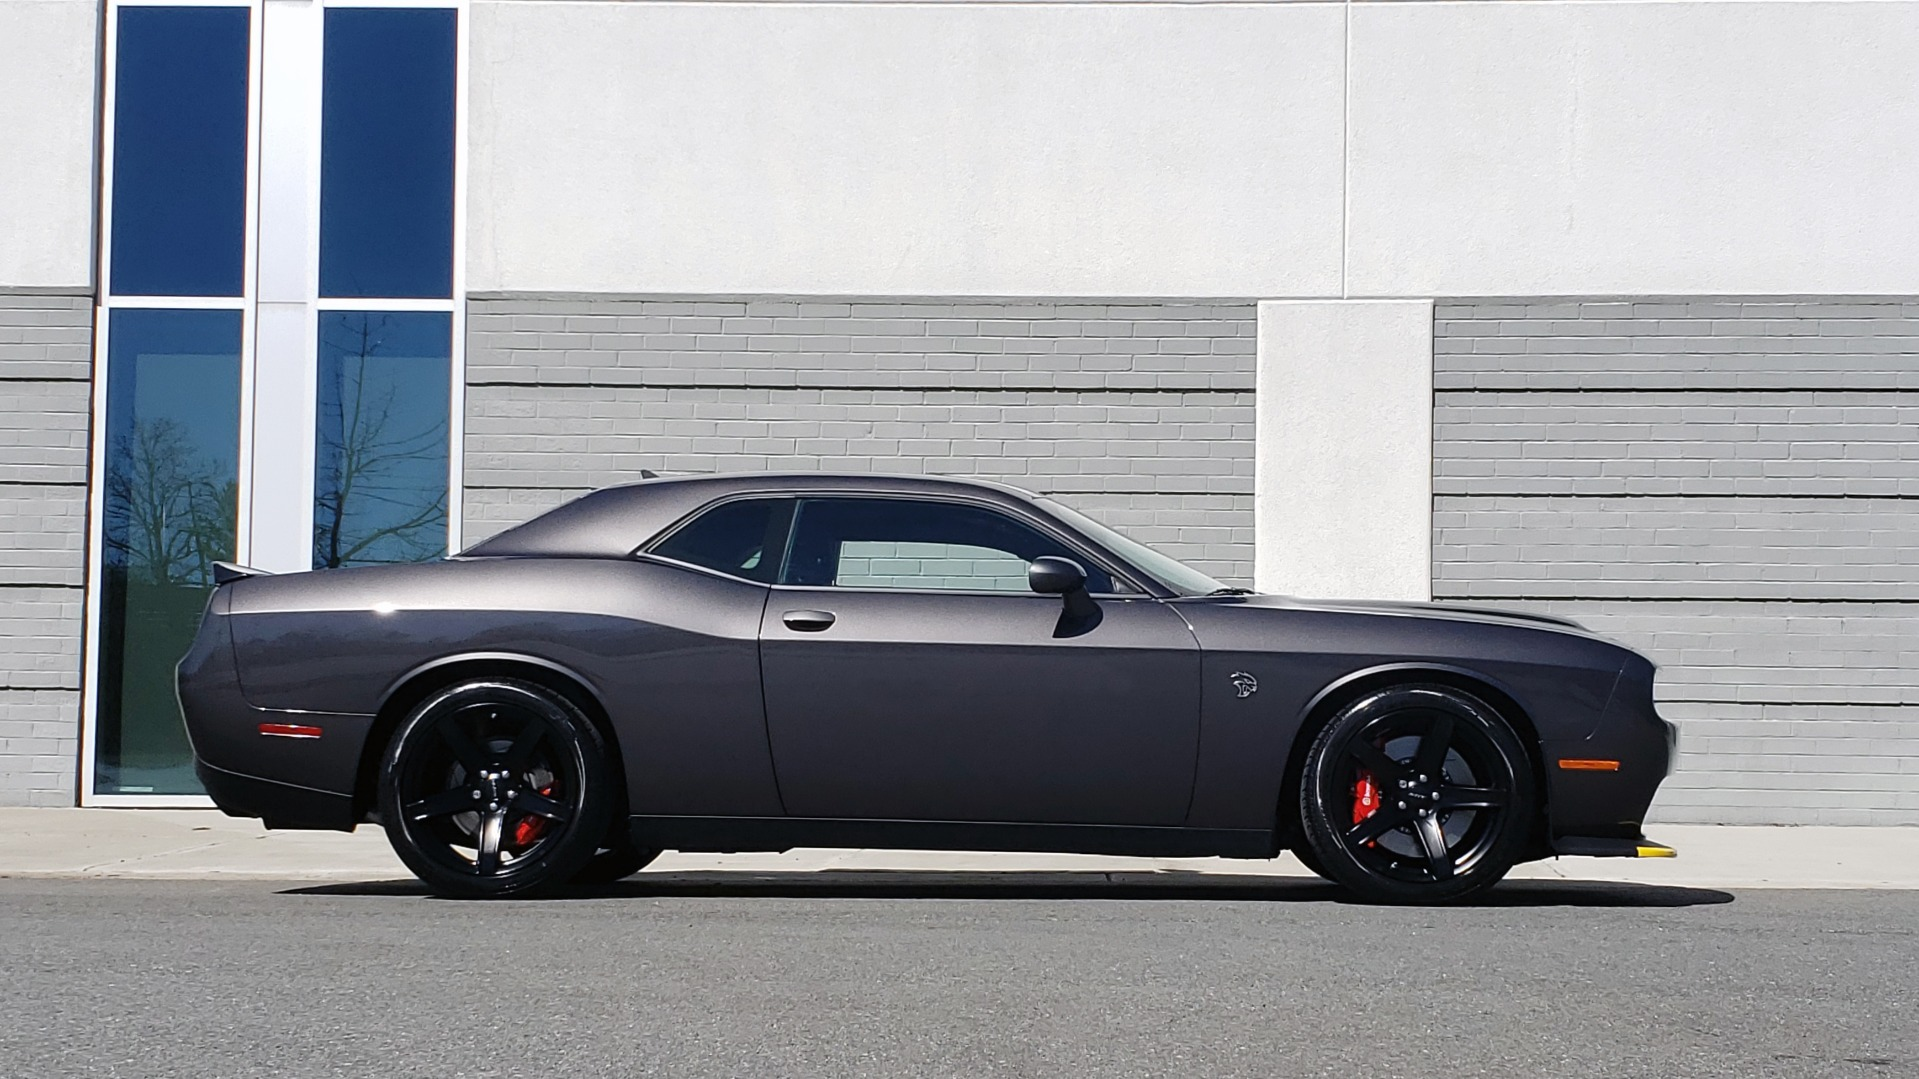 Used 2020 Dodge CHALLENGER SRT HELLCAT (717HP) / NAV / AUTO / CLOTH / REARVIEW / LOW MILES for sale $64,999 at Formula Imports in Charlotte NC 28227 7